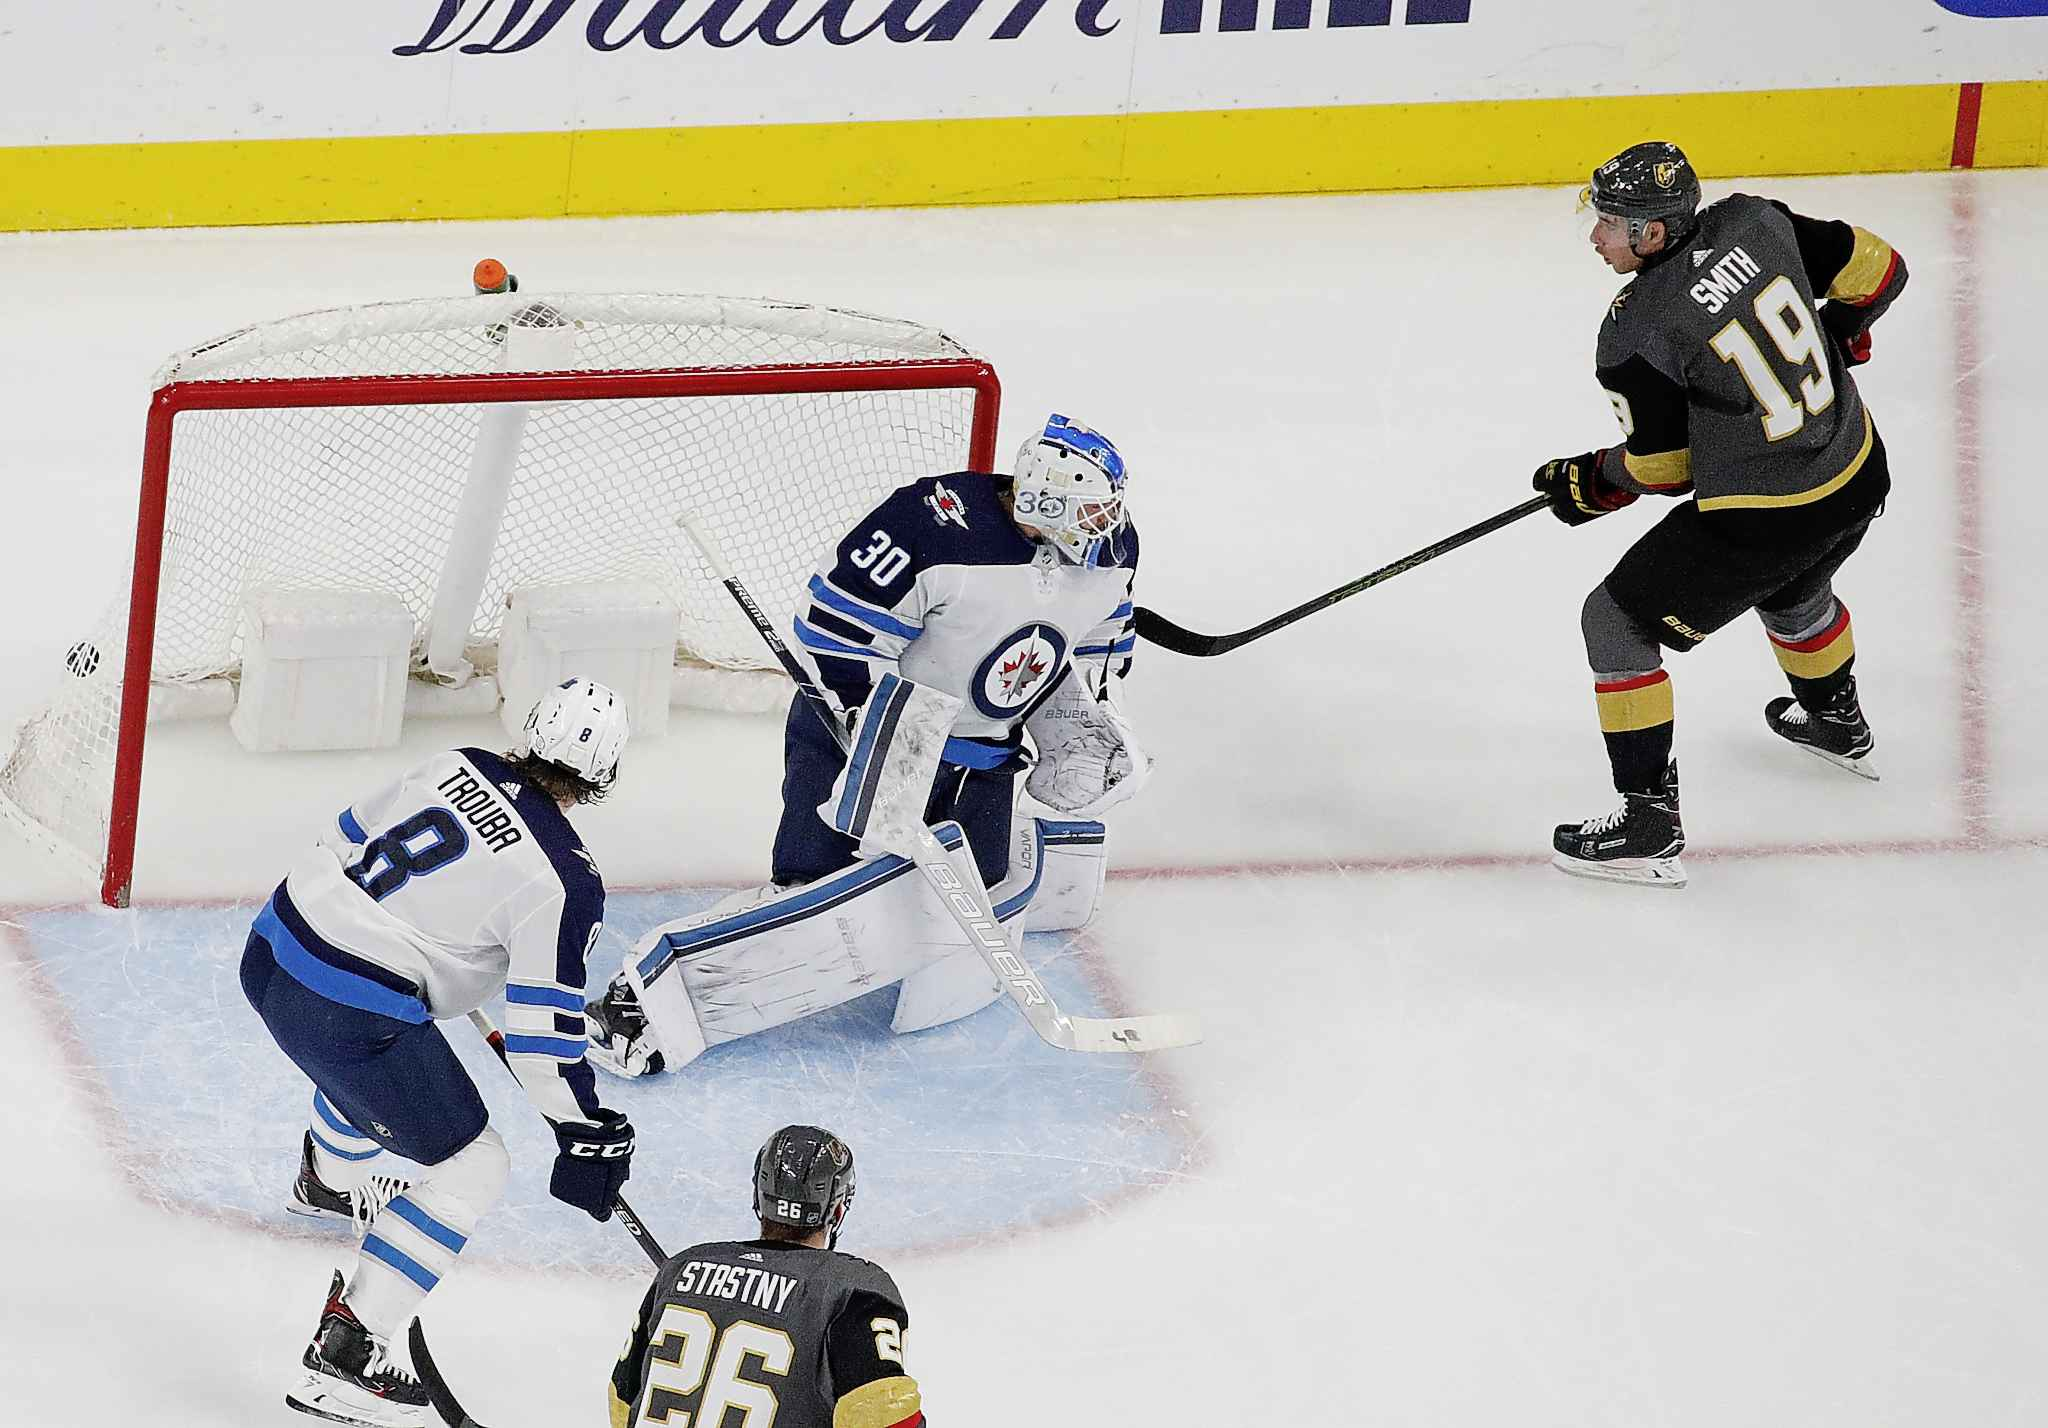 Vegas Golden Knights right wing Reilly Smith scores on Winnipeg Jets goaltender Laurent Brossoit during the first period Thursday in Las Vegas.